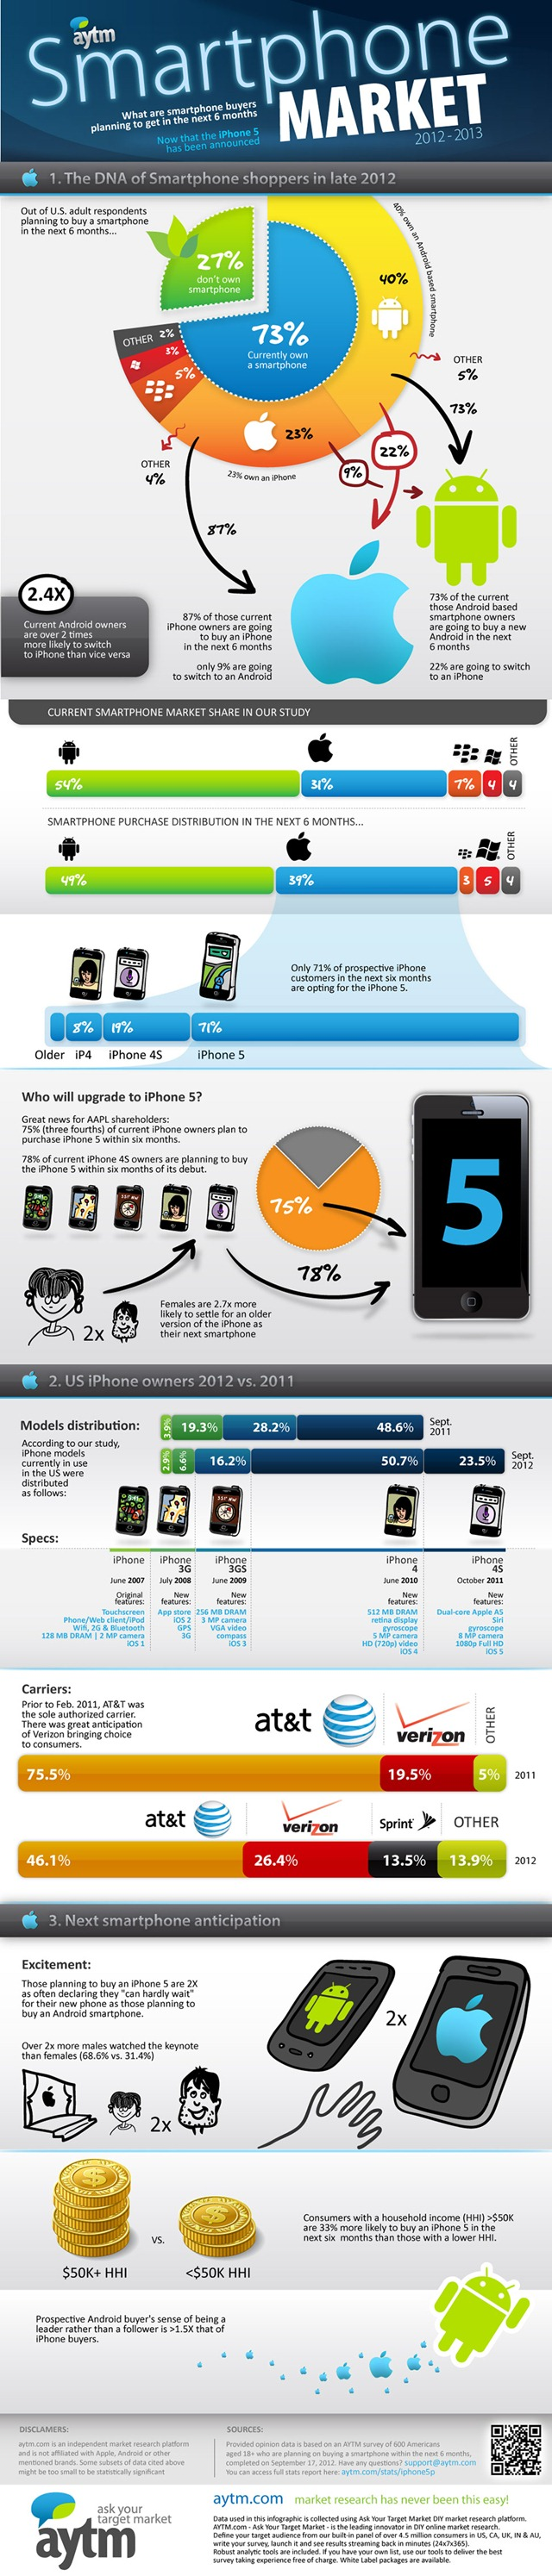 Infographic_iphone5-mobile market impact